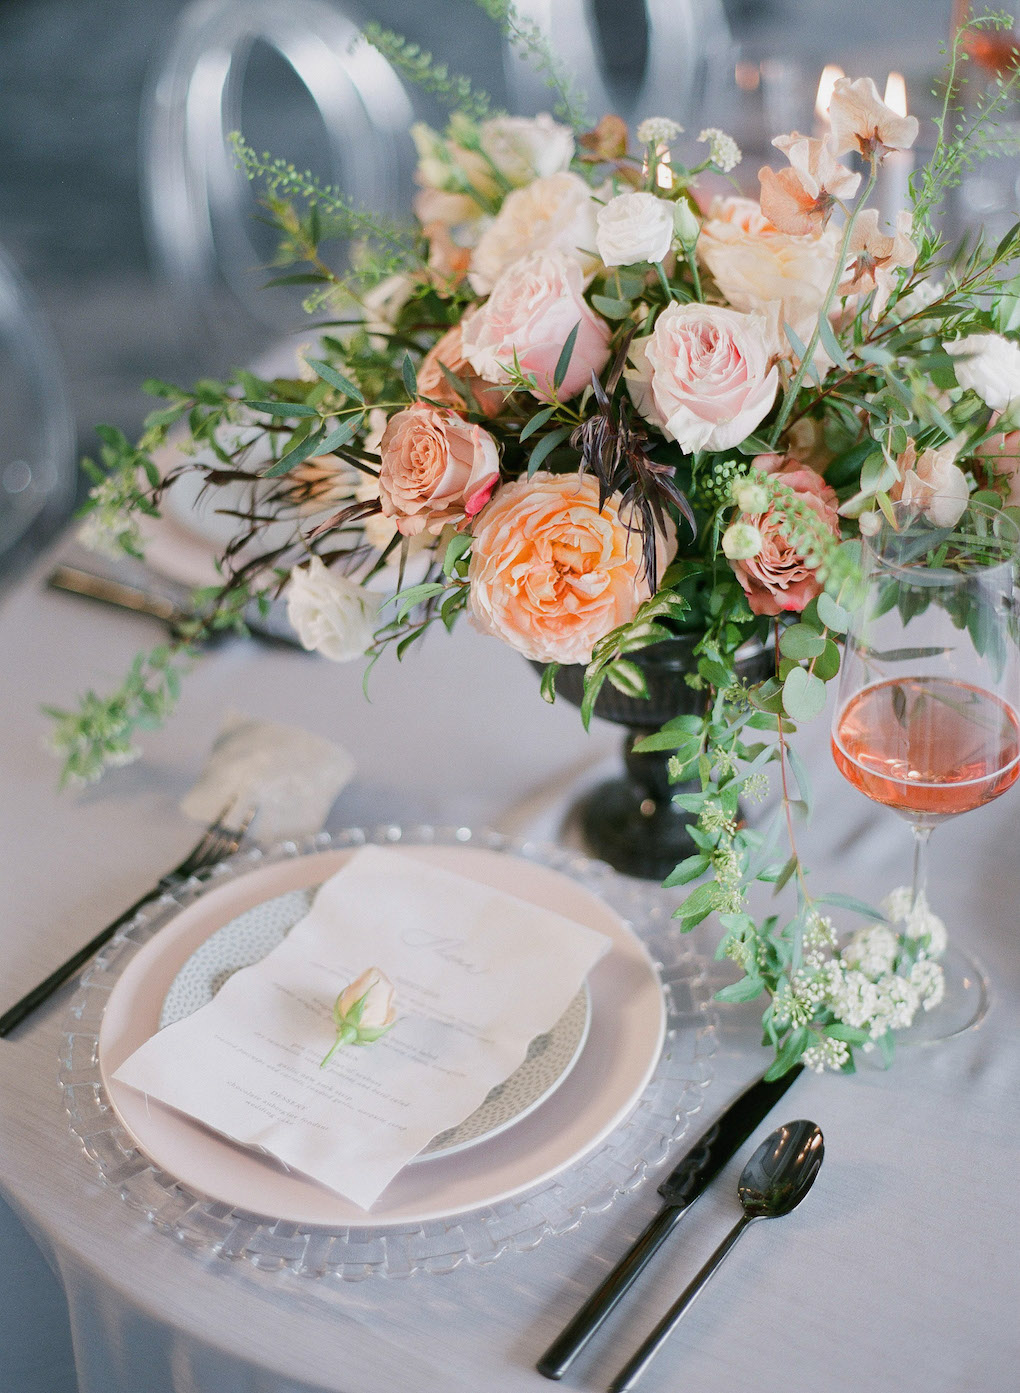 Rose and Grey Wedding Color Palette: Soft and Subtle Palettes of Spring Blossoms | Editorial Shoot at The Renaissance Pittsburgh by Exhale Events. See more inspiration at exhale-events.com!